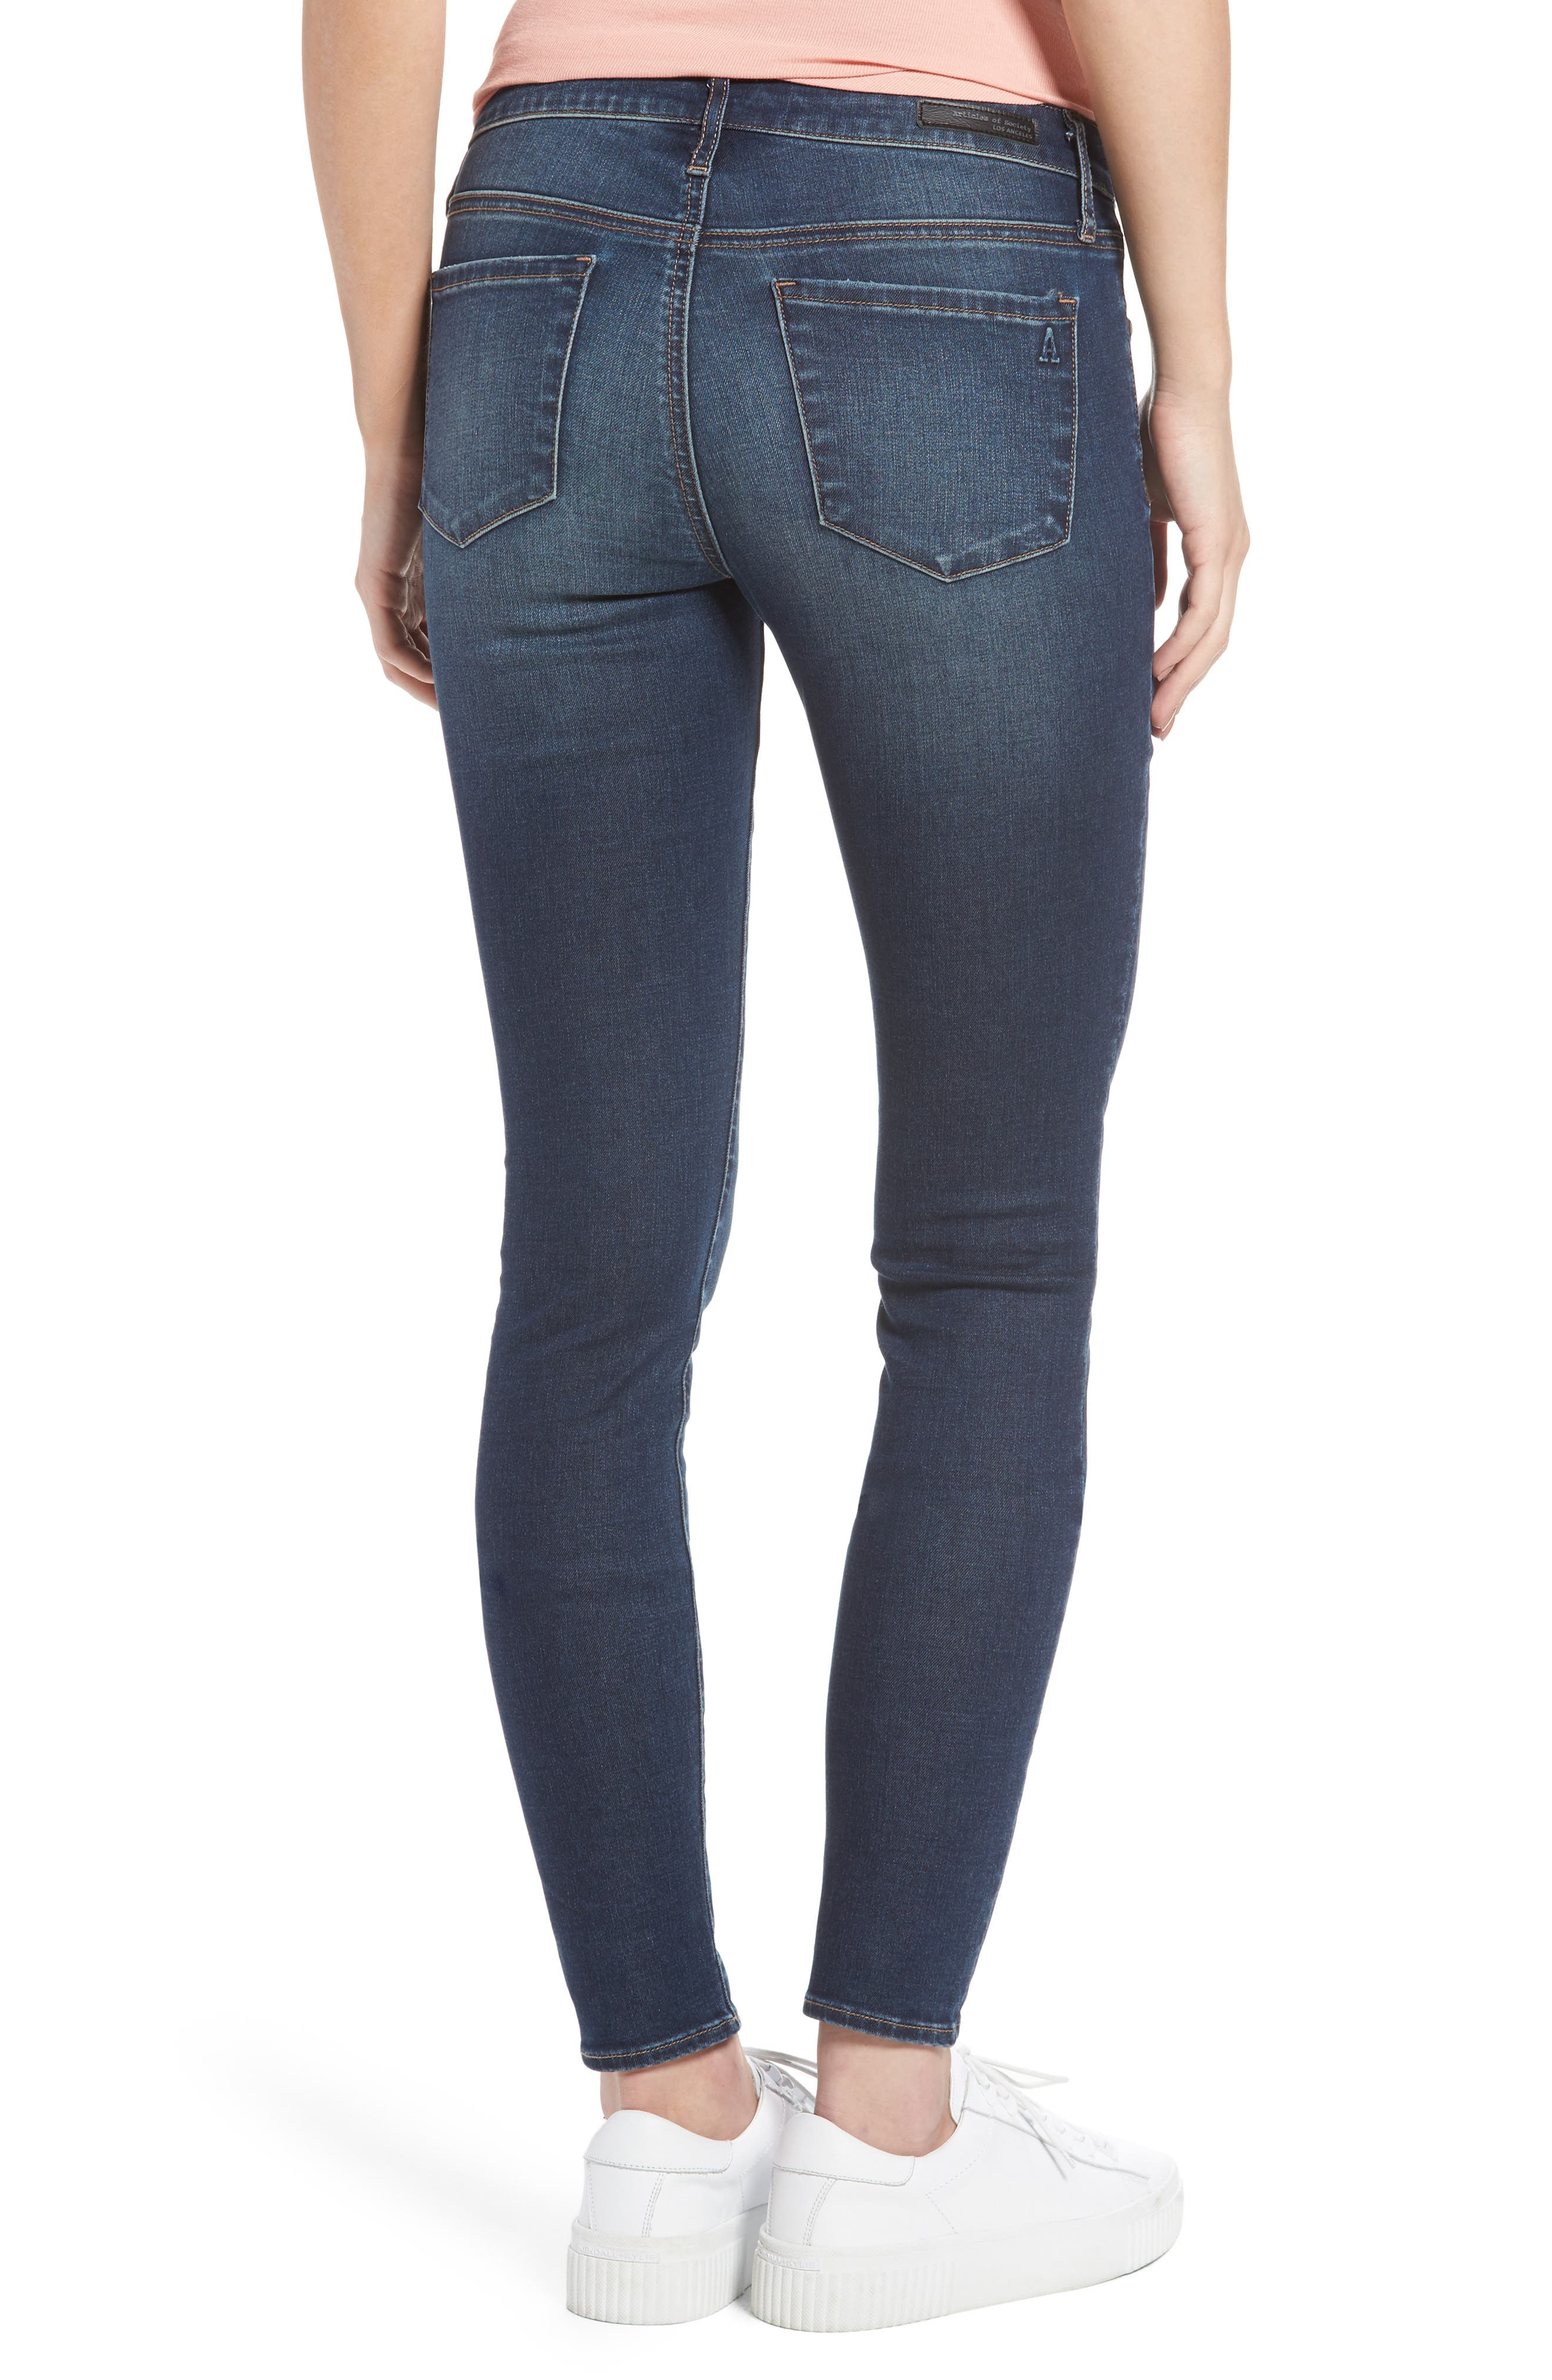 Melody Skinny Jeans,                             Alternate thumbnail 2, color,                             491